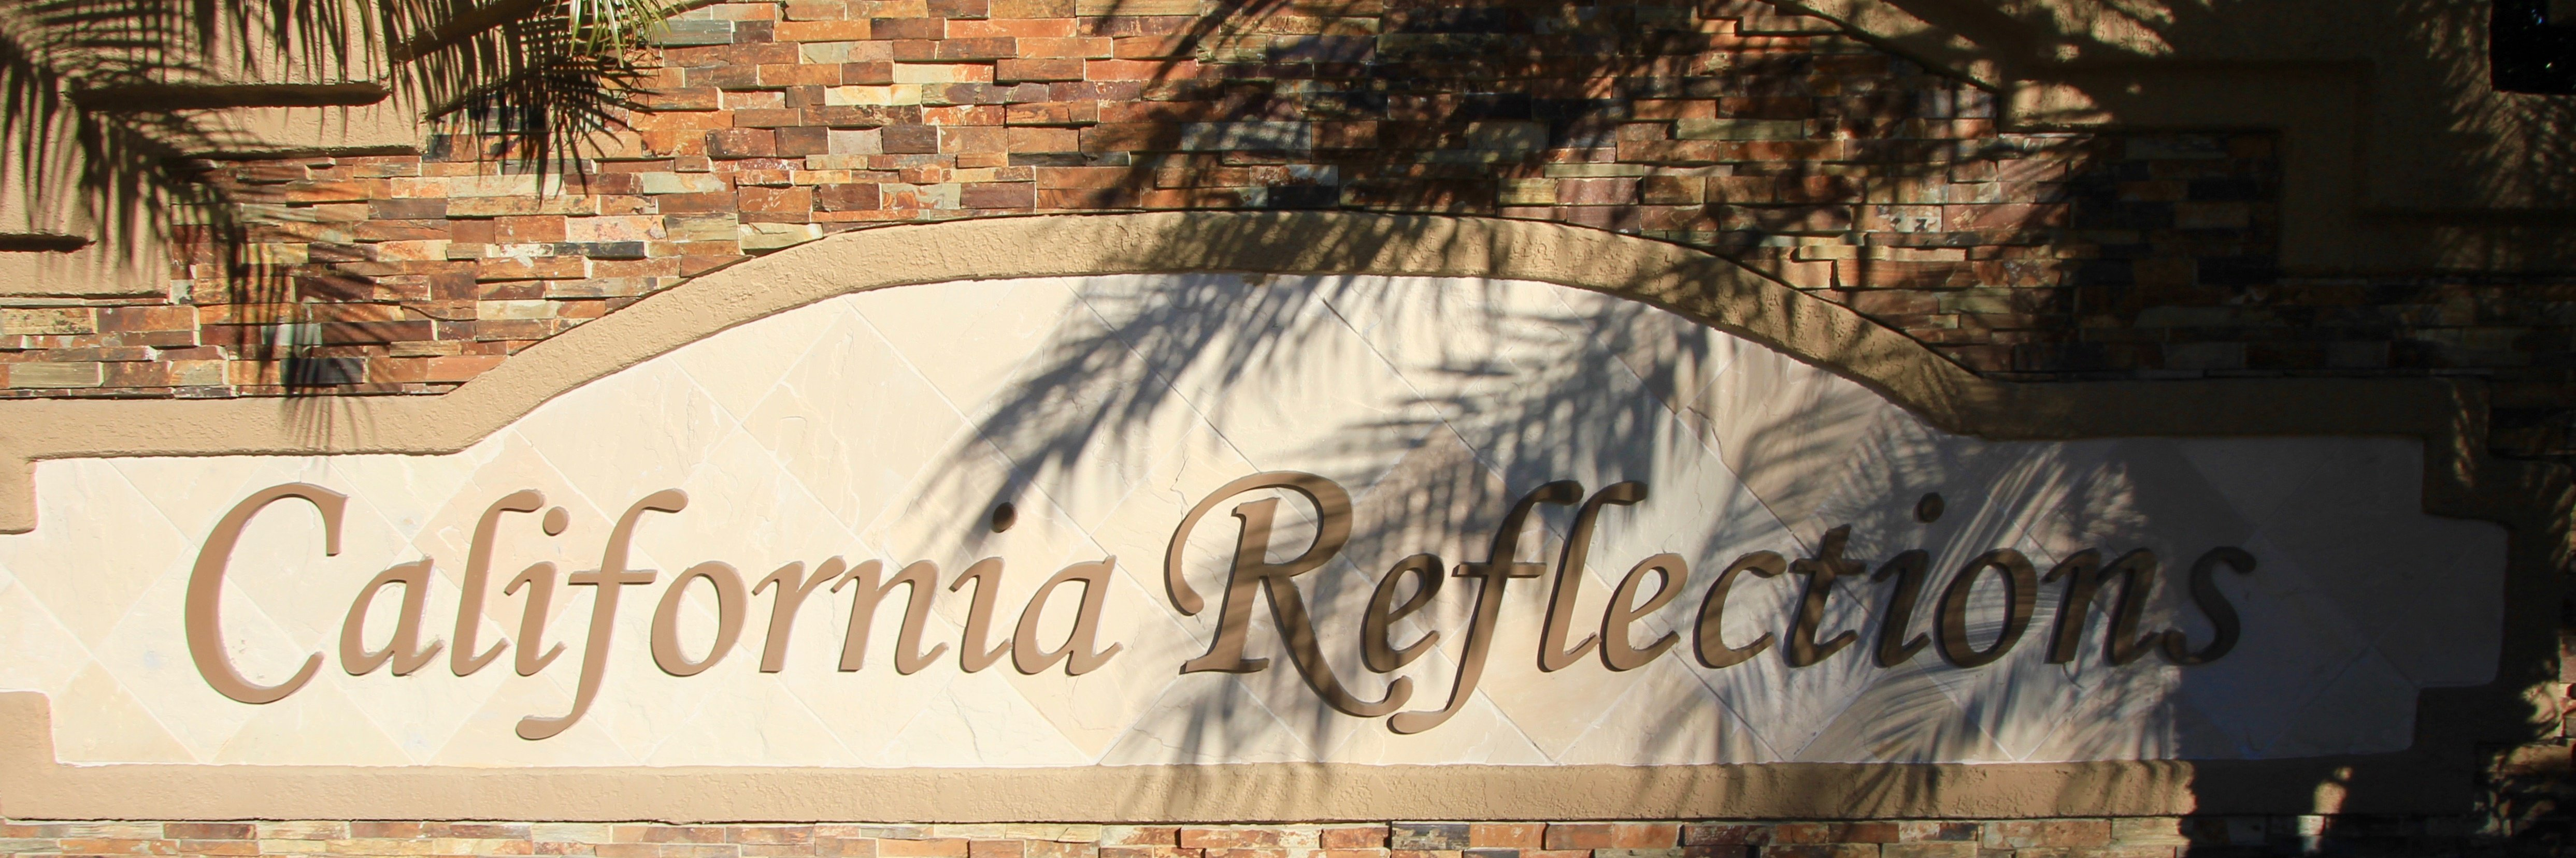 California Reflections Community Marquee in Aliso Viejo Ca